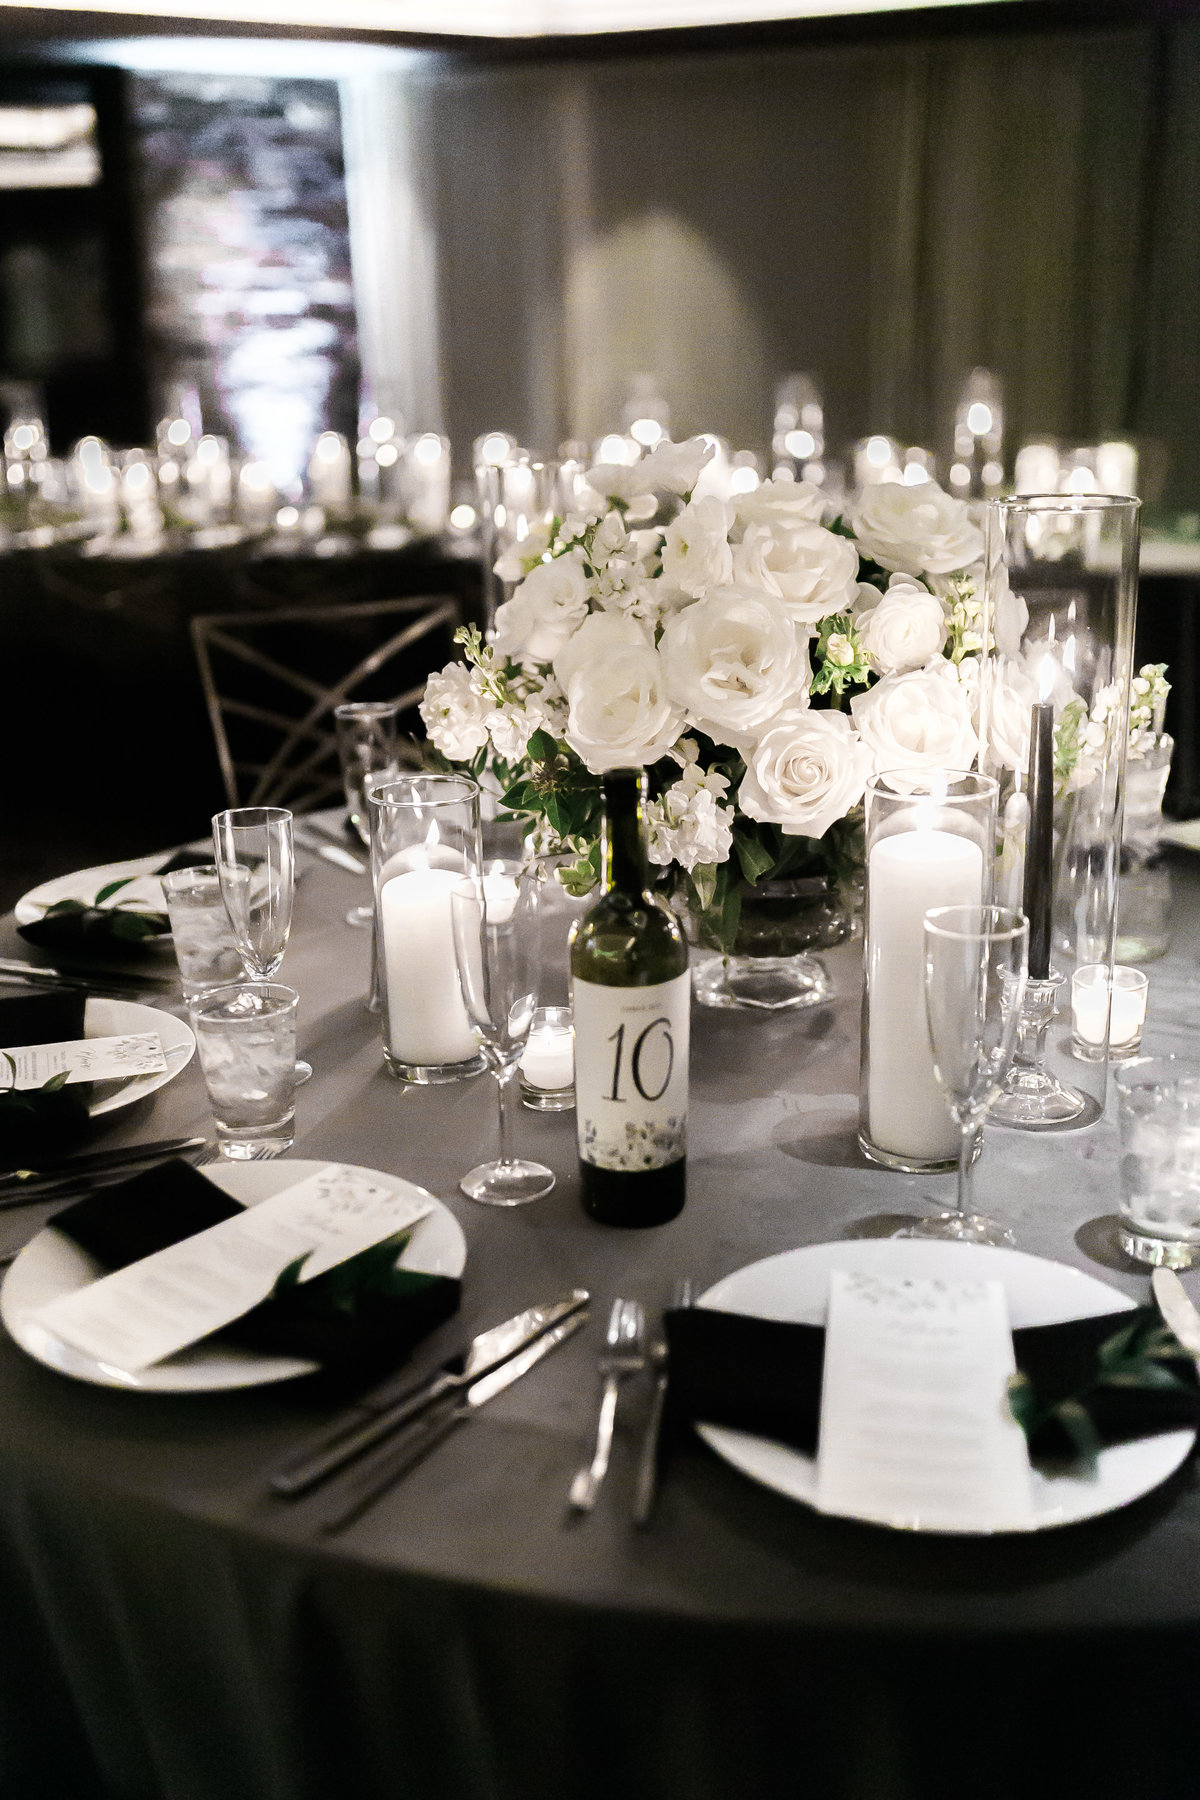 grey velvet linen with white floral centerpiece and black taper candles